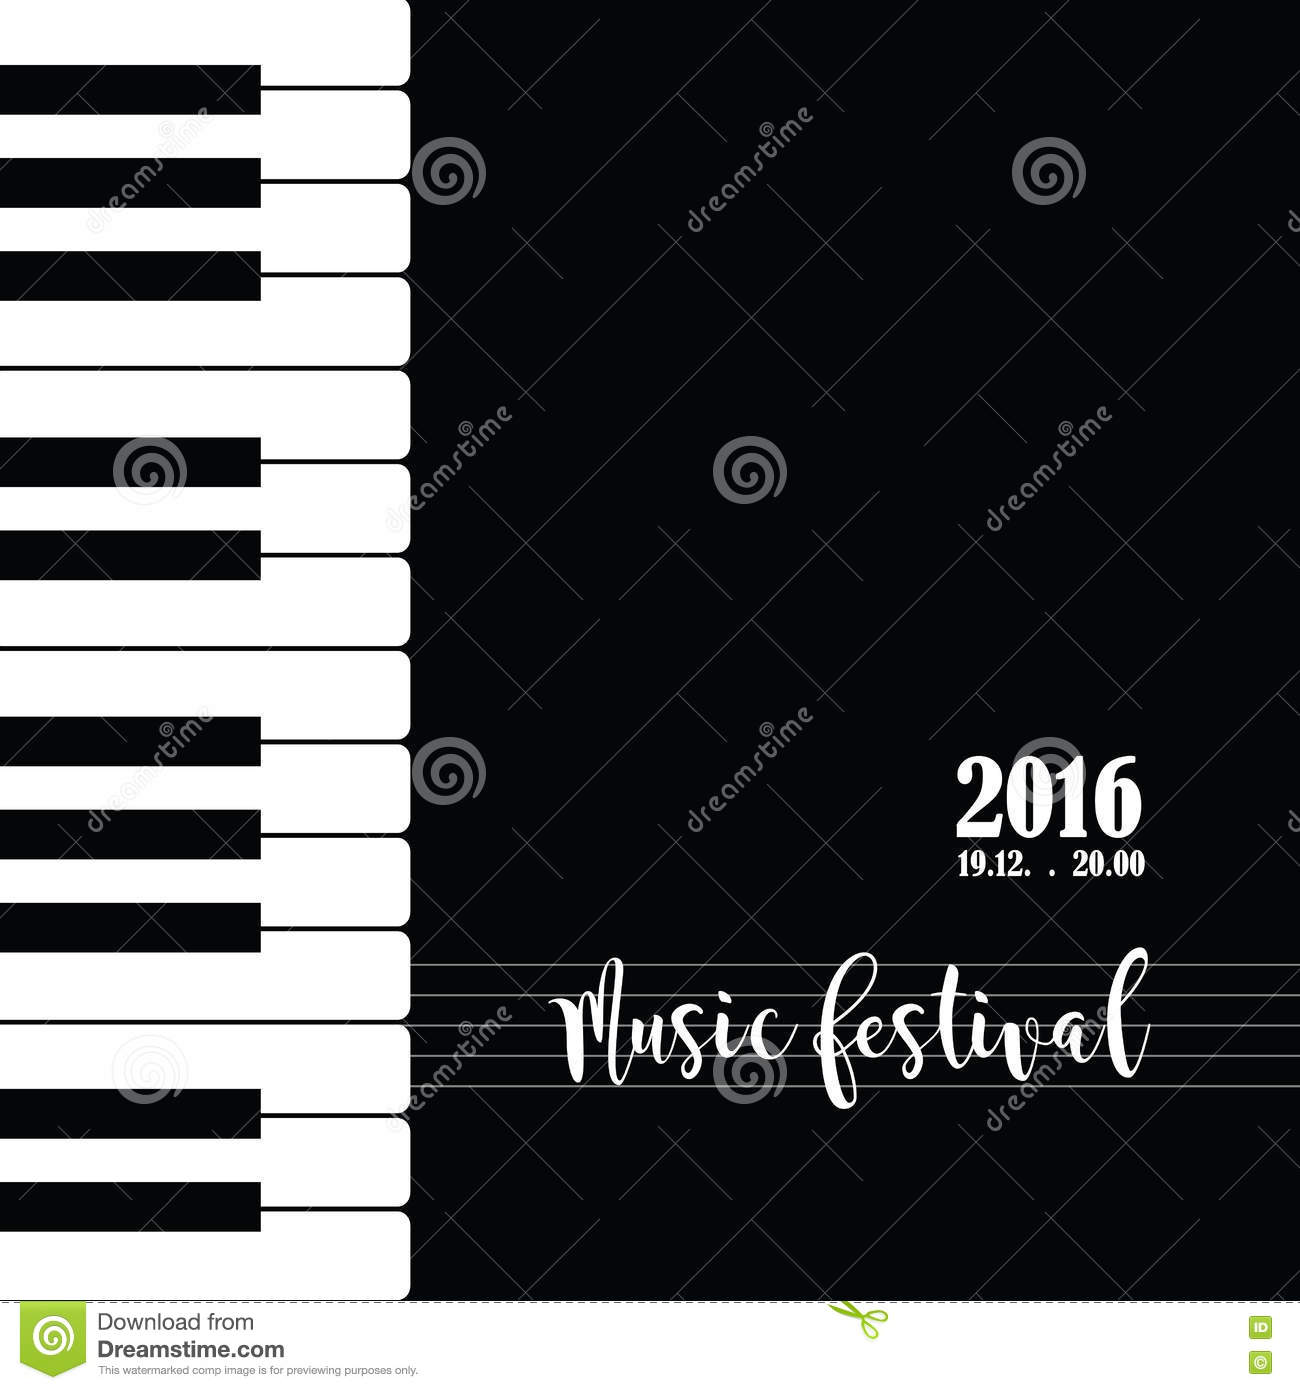 Music Piano Festival Poster Template. Stock Vector - Illustration of ...